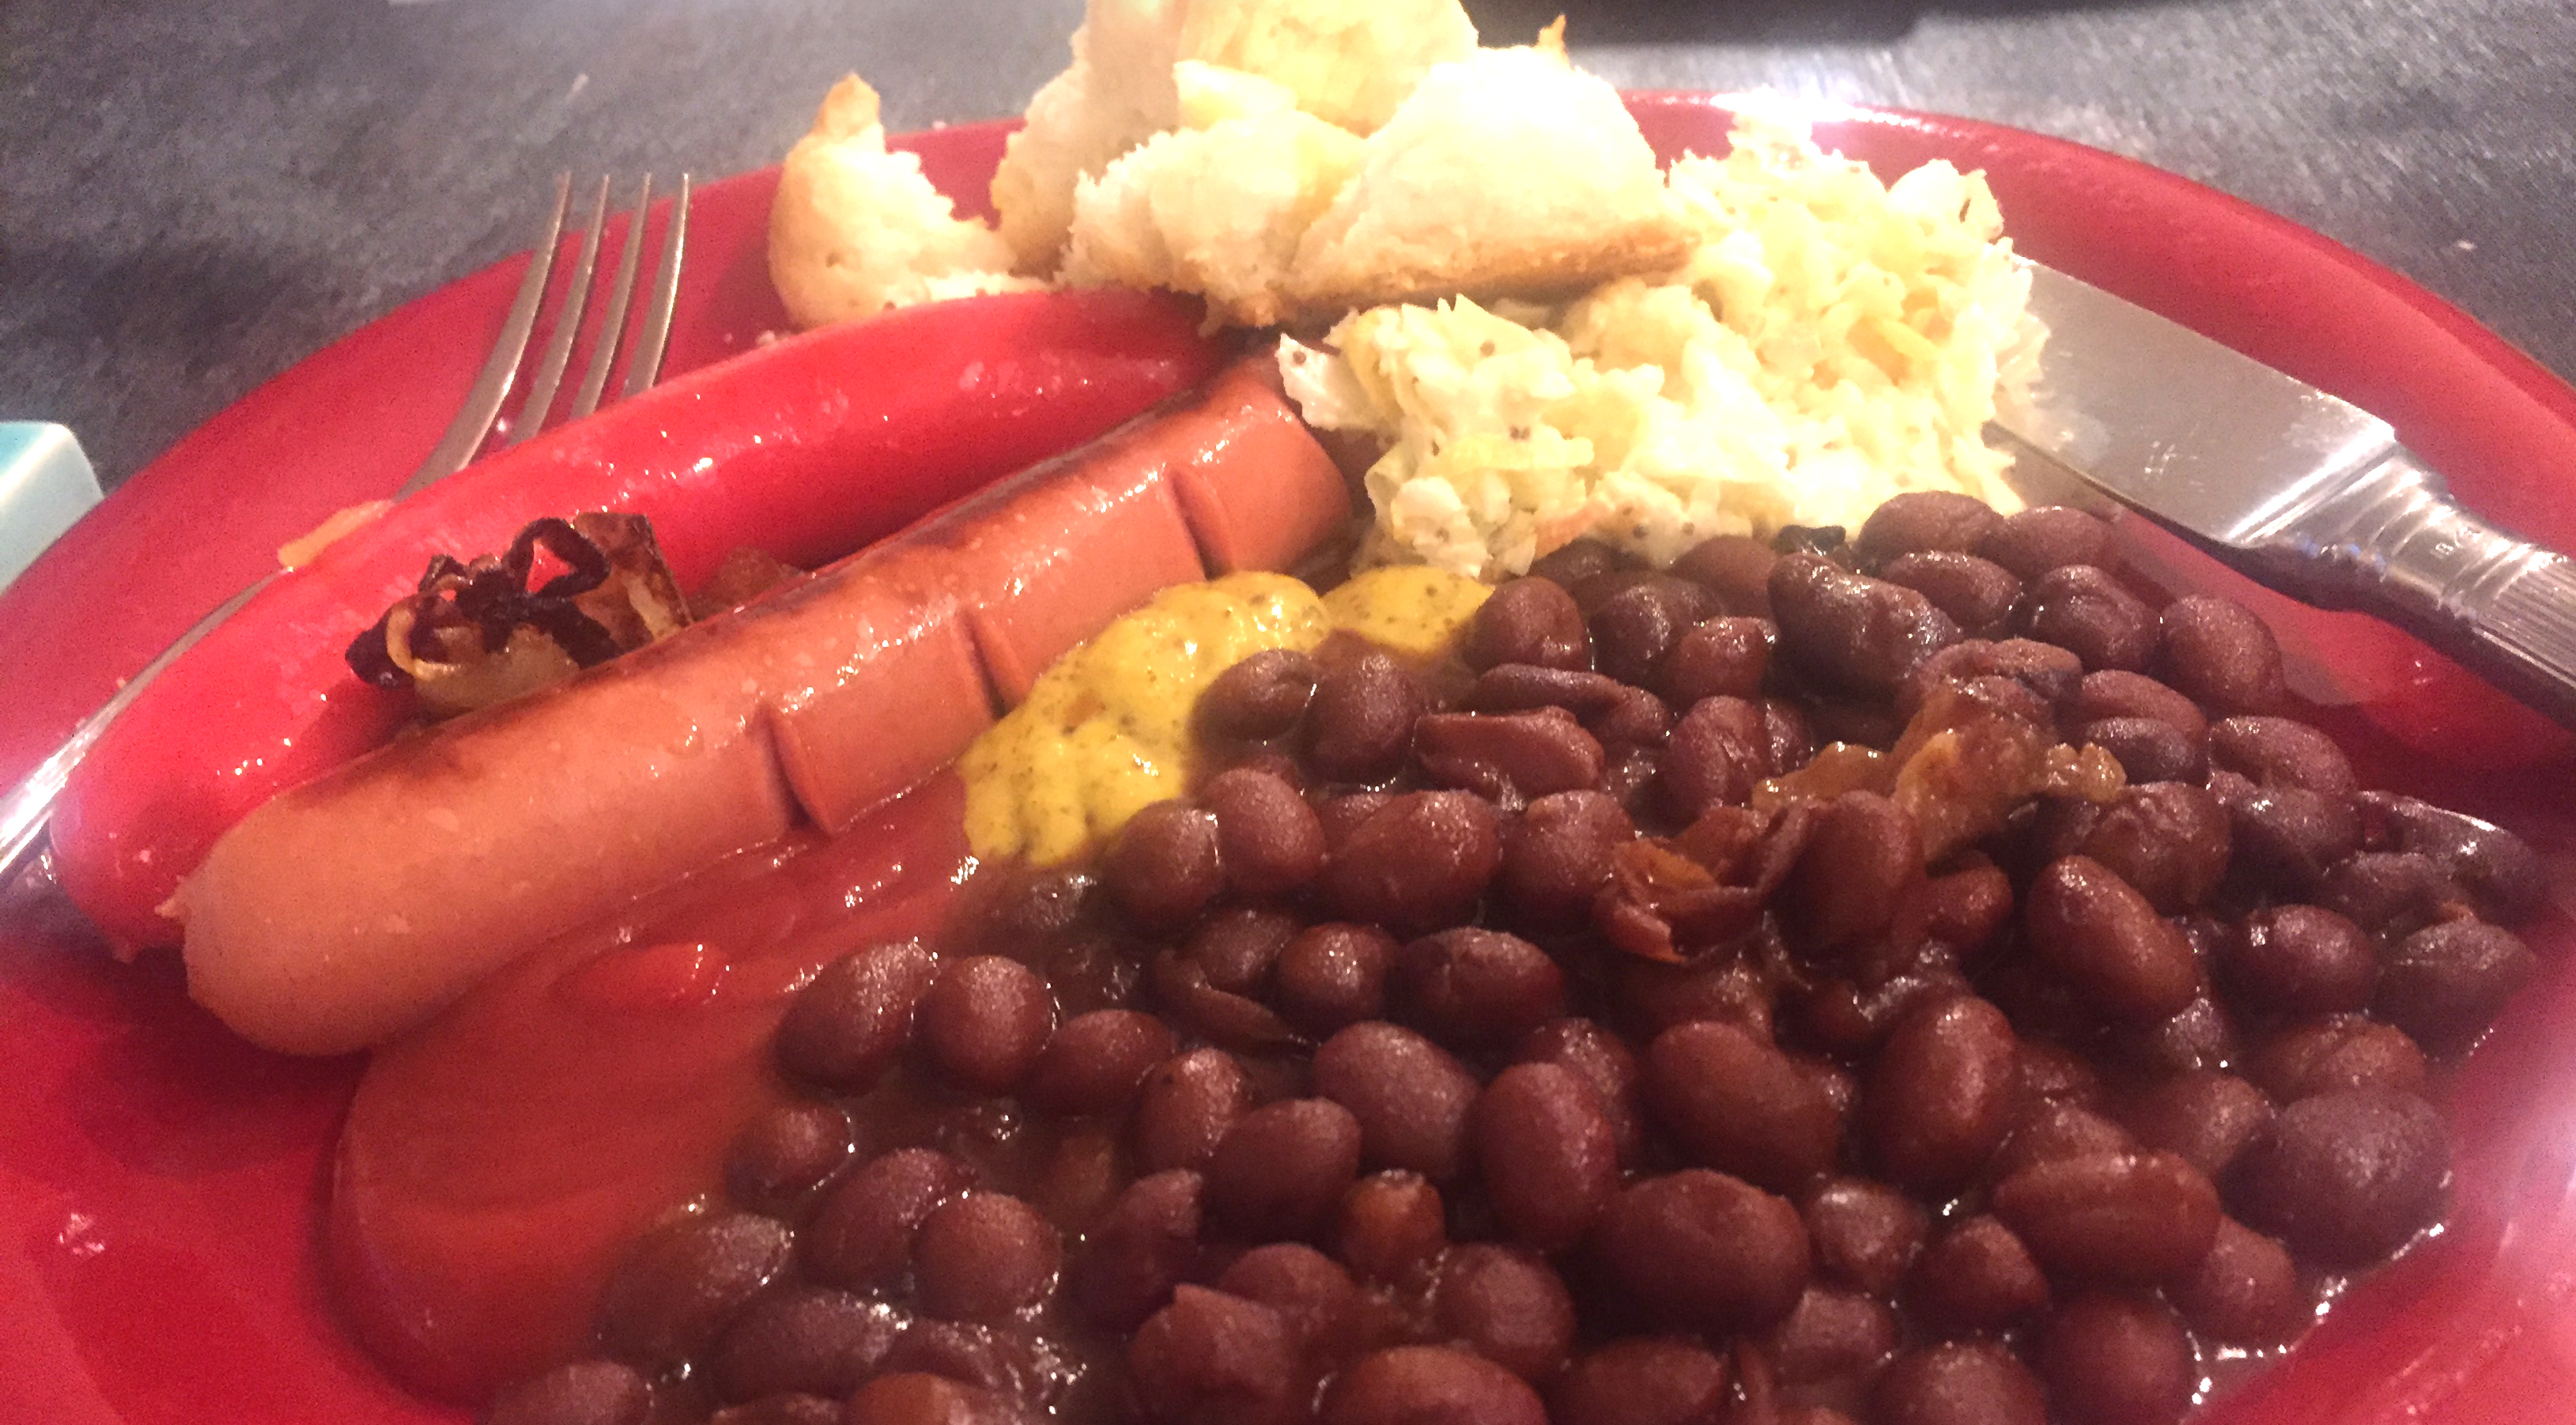 Saay Night Baked Beans And Franks A Tradition Worth Keeping